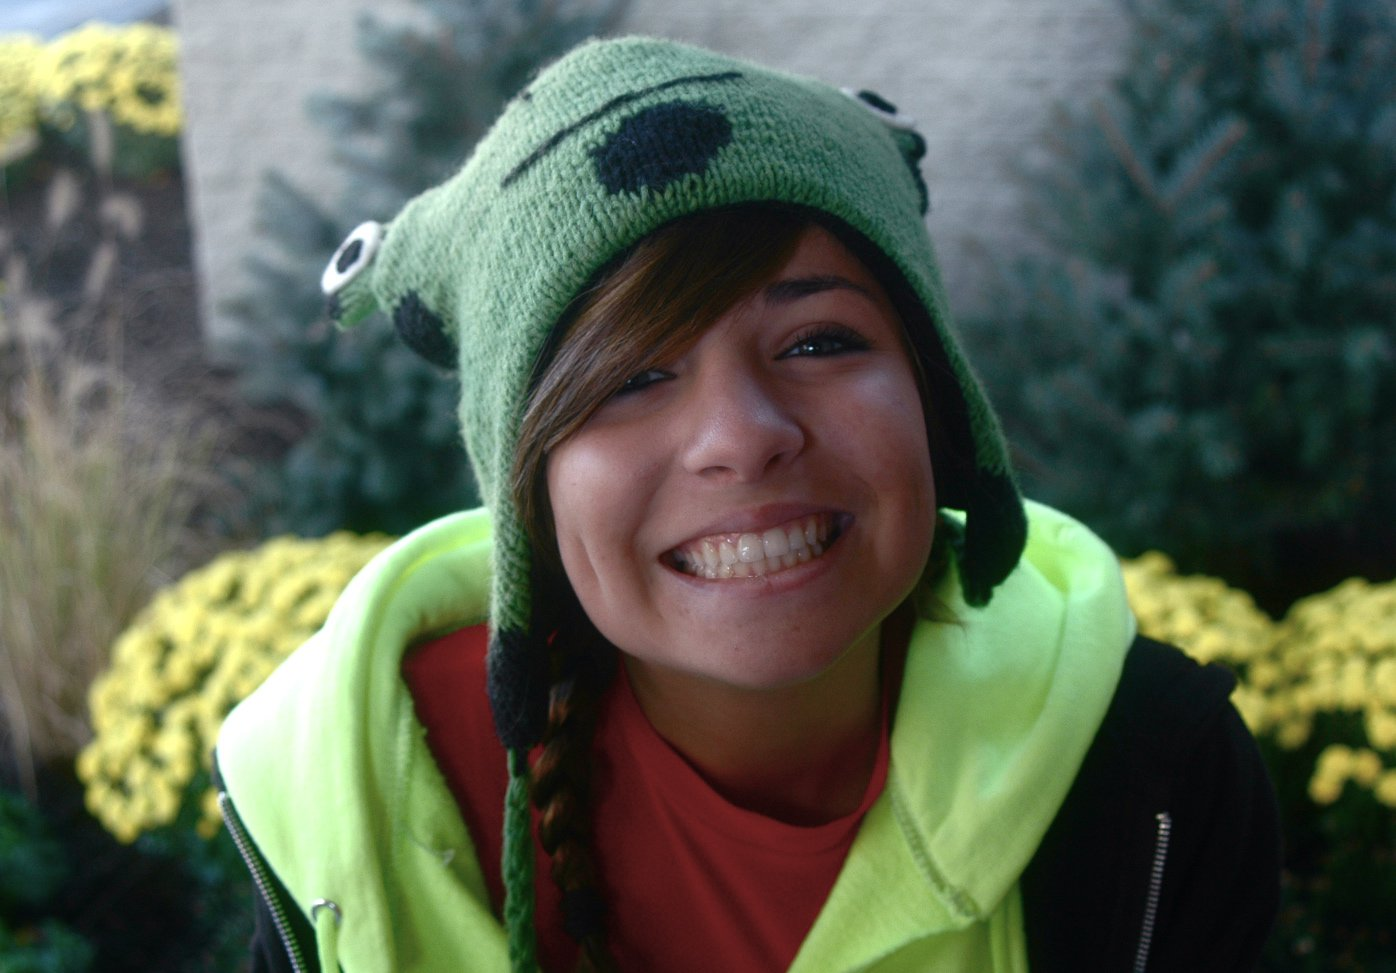 My frog hat. [: